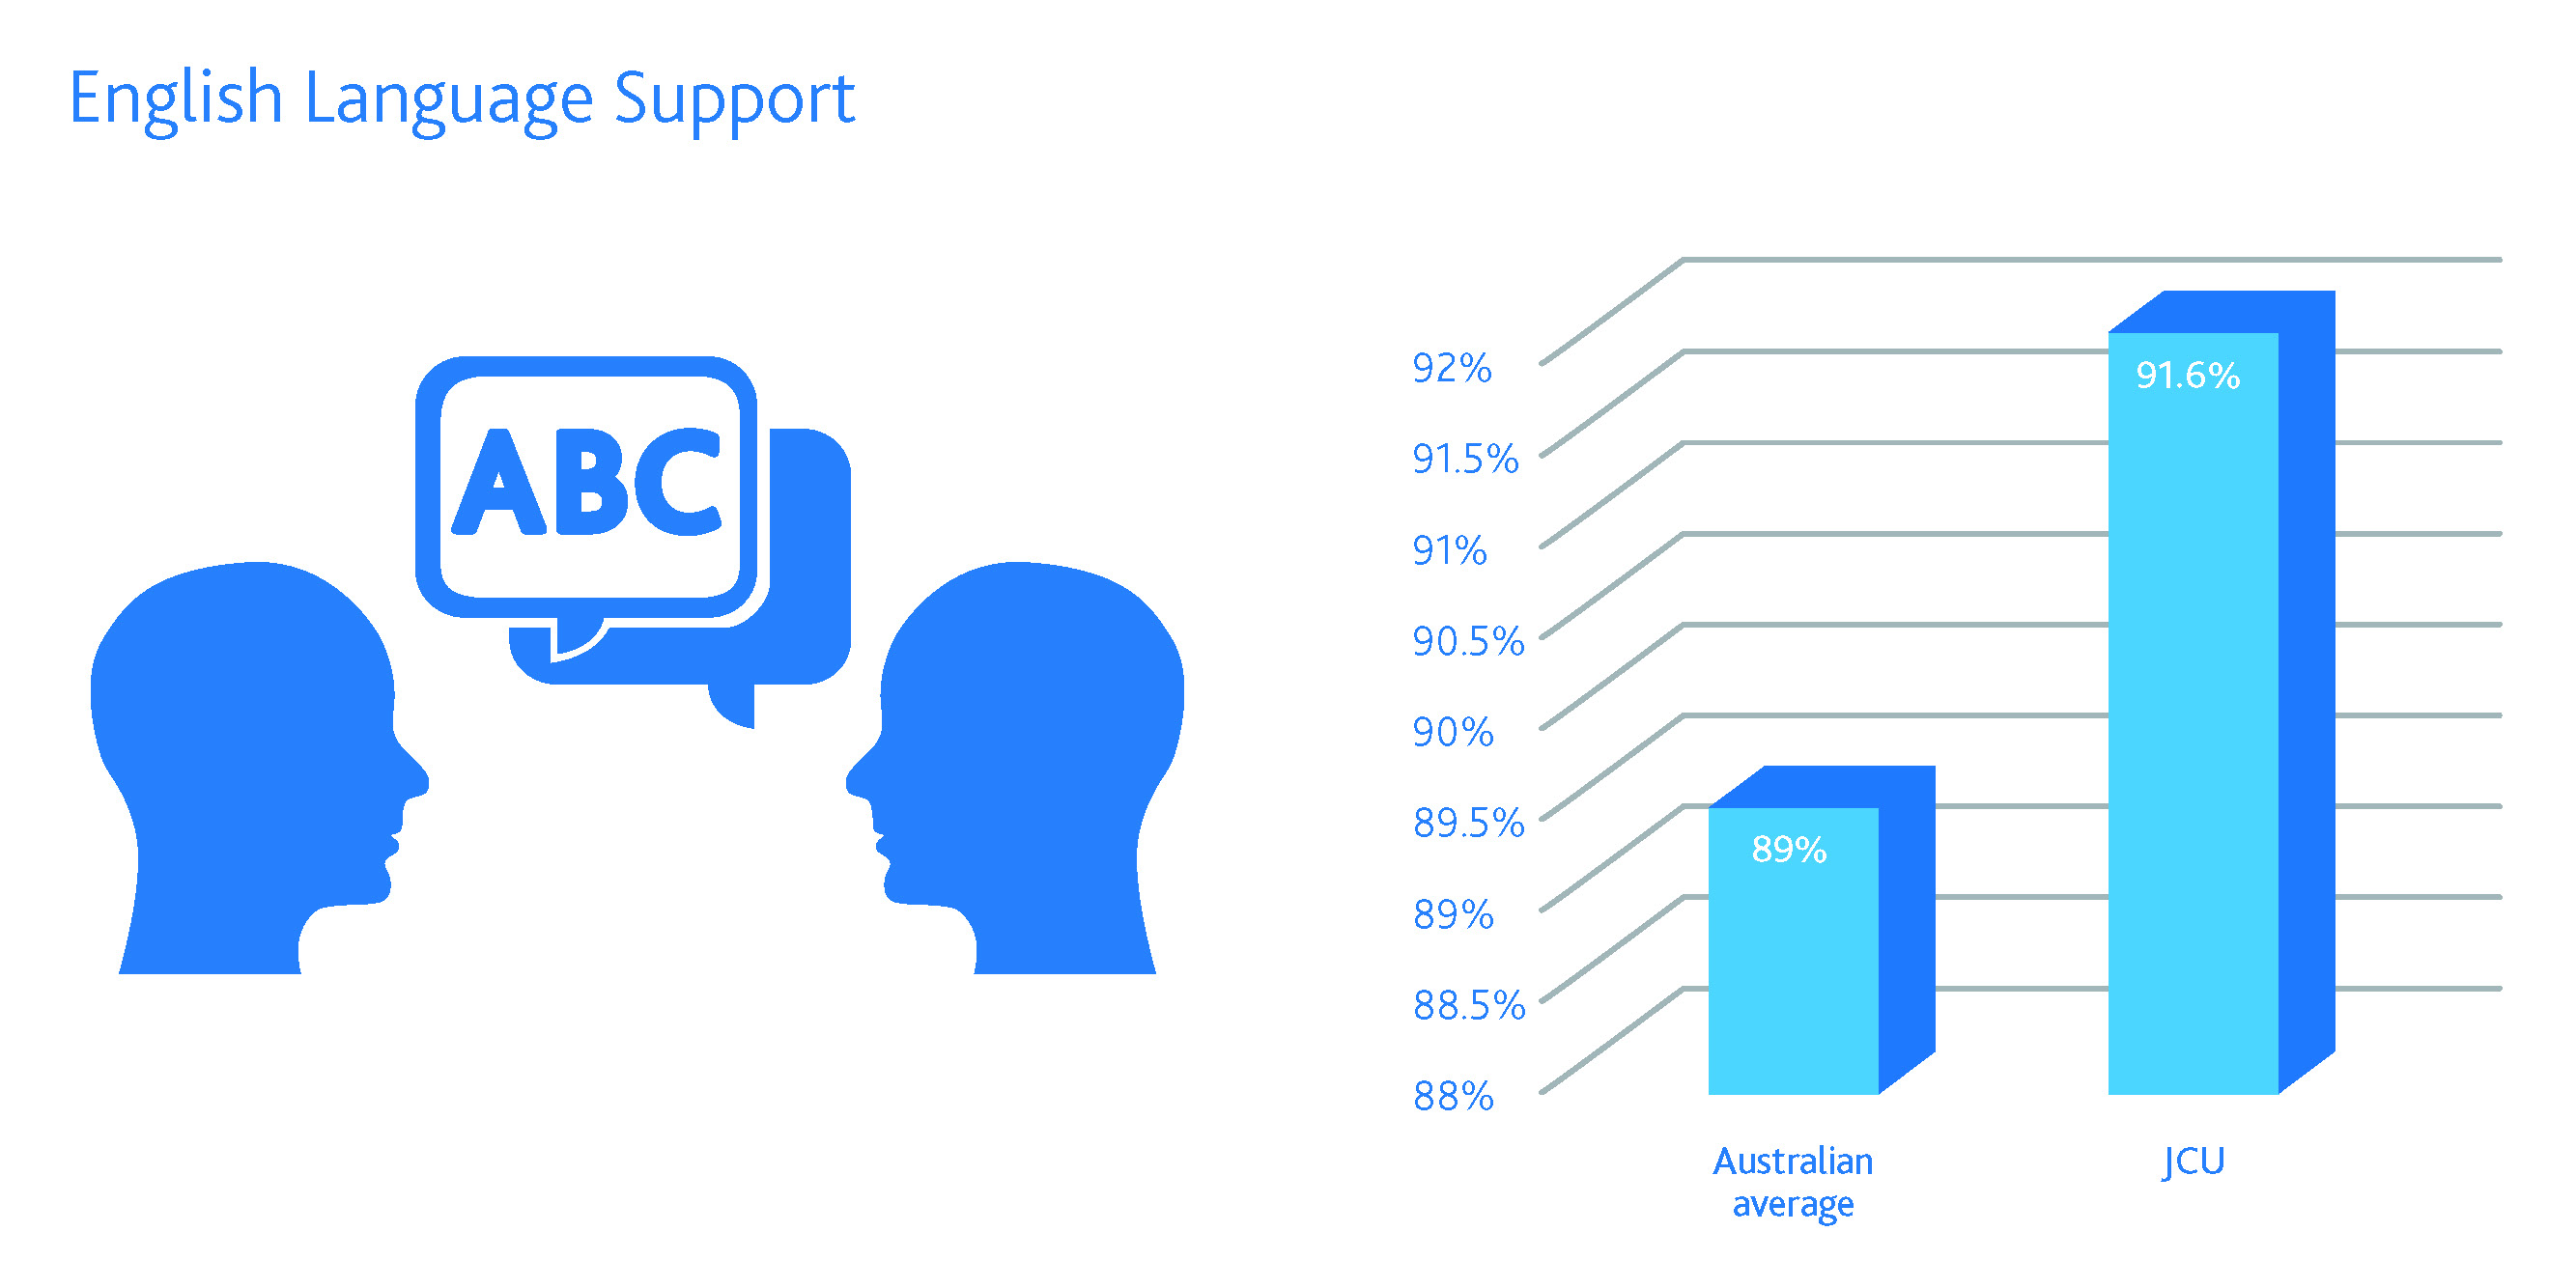 JCU student satisfaction with English language support